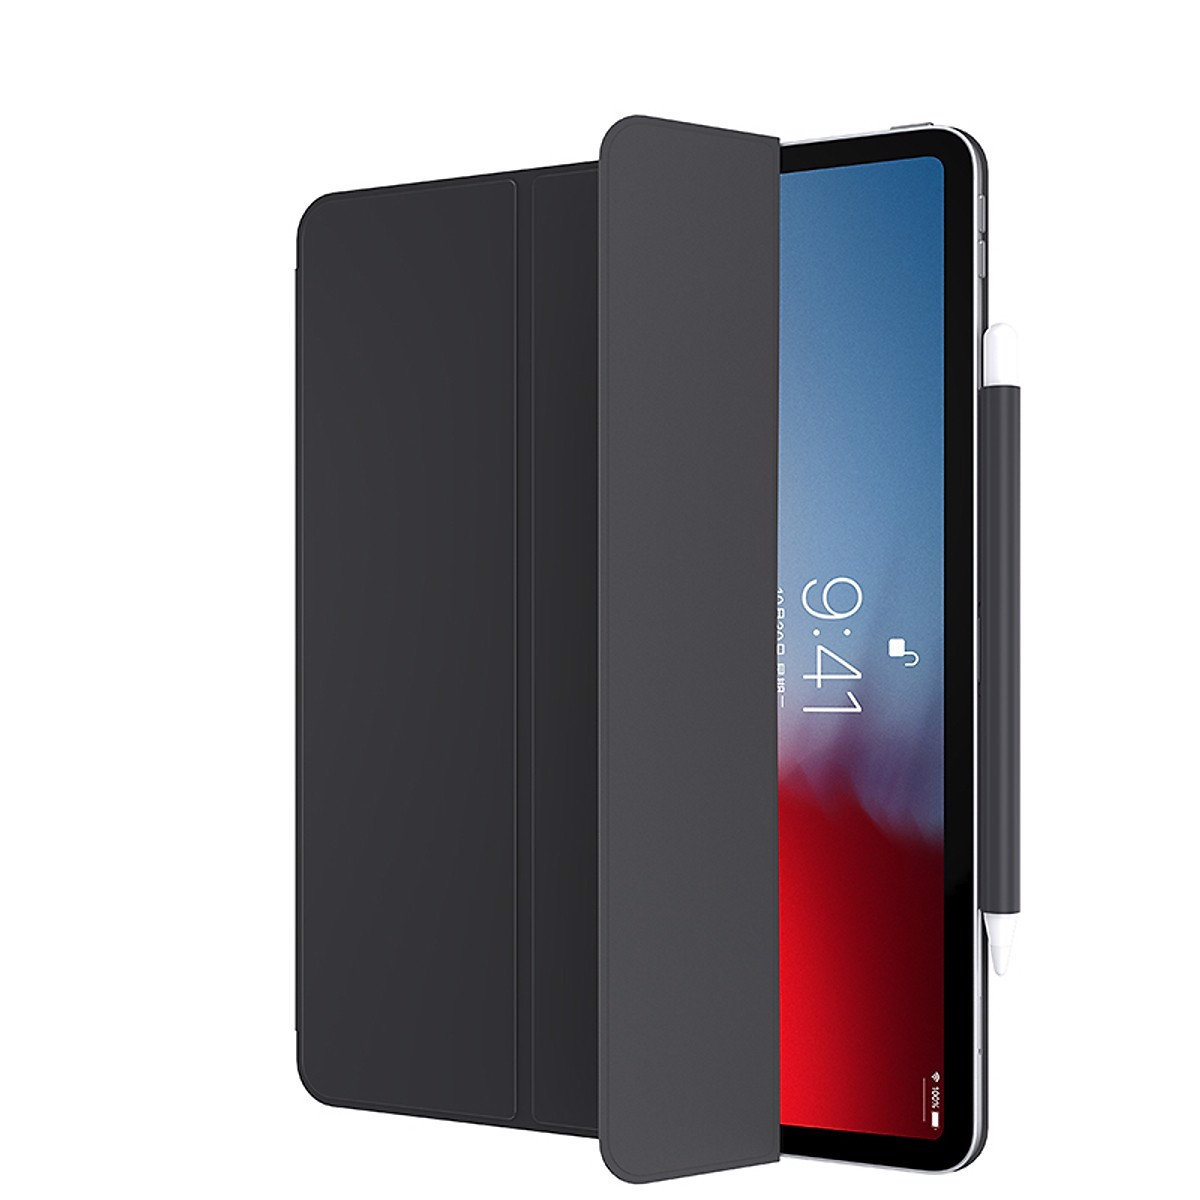 Bao Da Rock Ipad Pro 11 2018 - Hàng Apple8